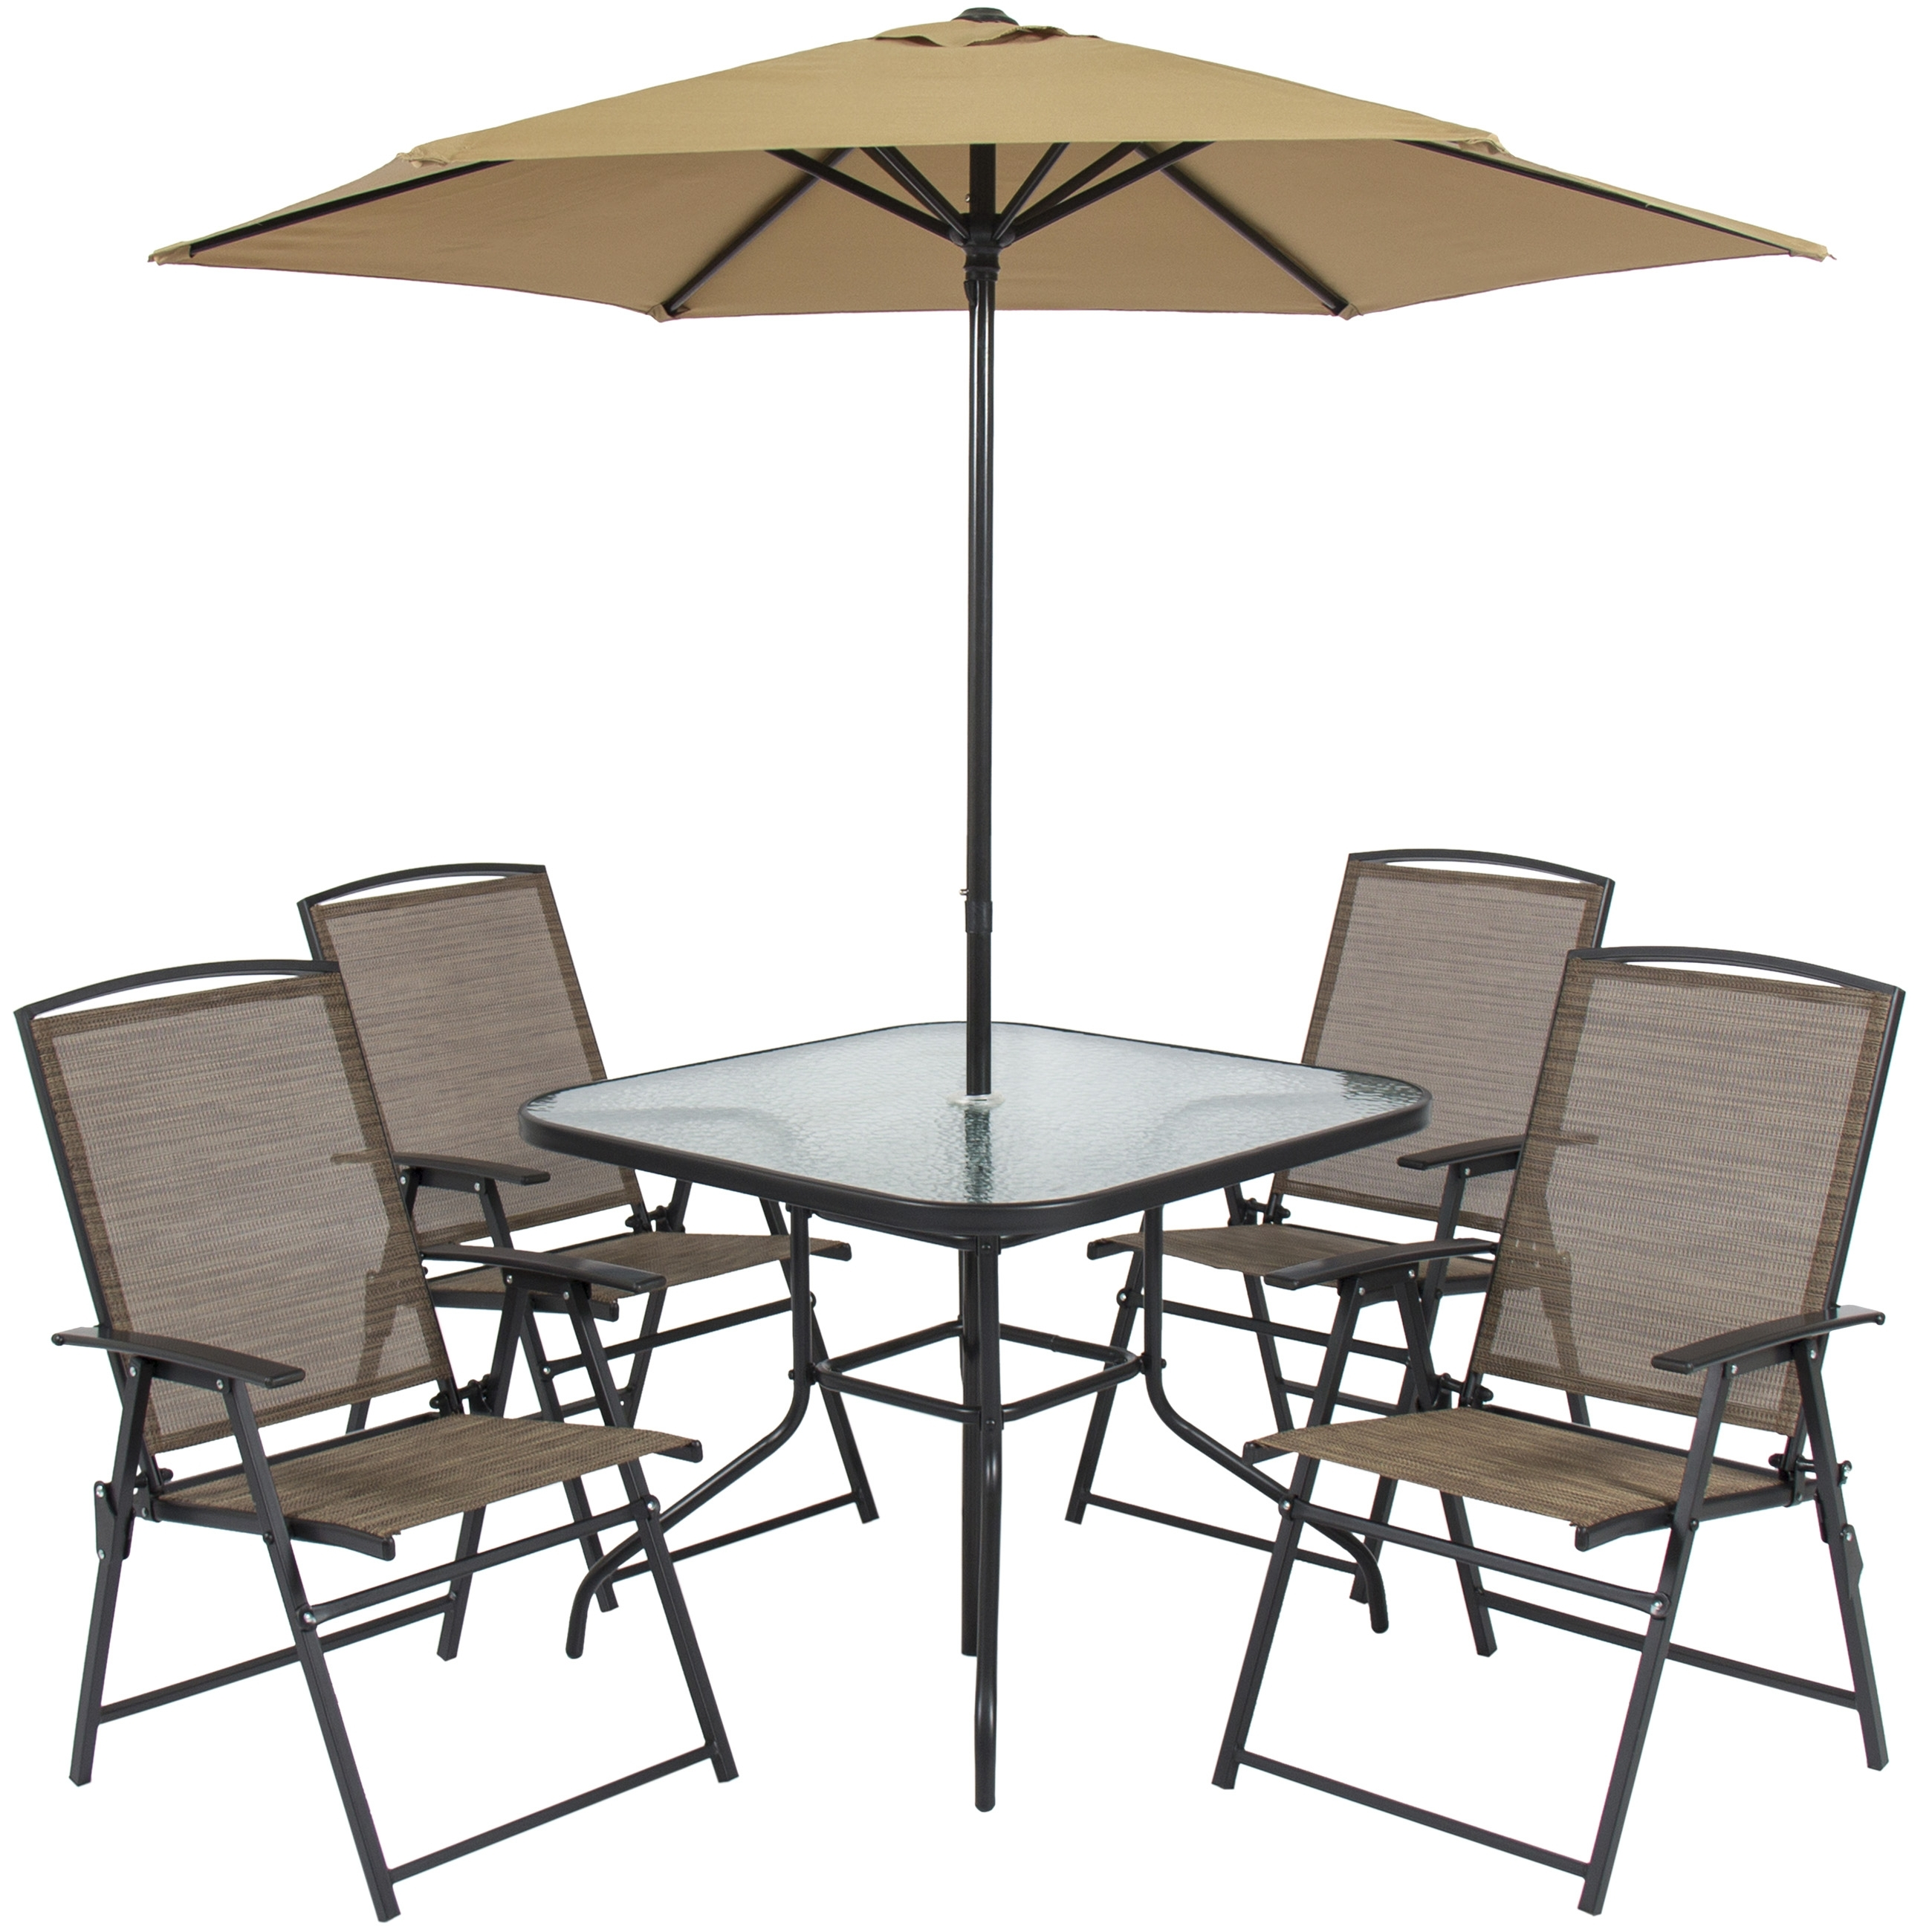 Patio Table And Chairs With Umbrellas In Most Up To Date Patio Table Chairs Umbrella Set New Best Choice Products Chair With (View 17 of 20)